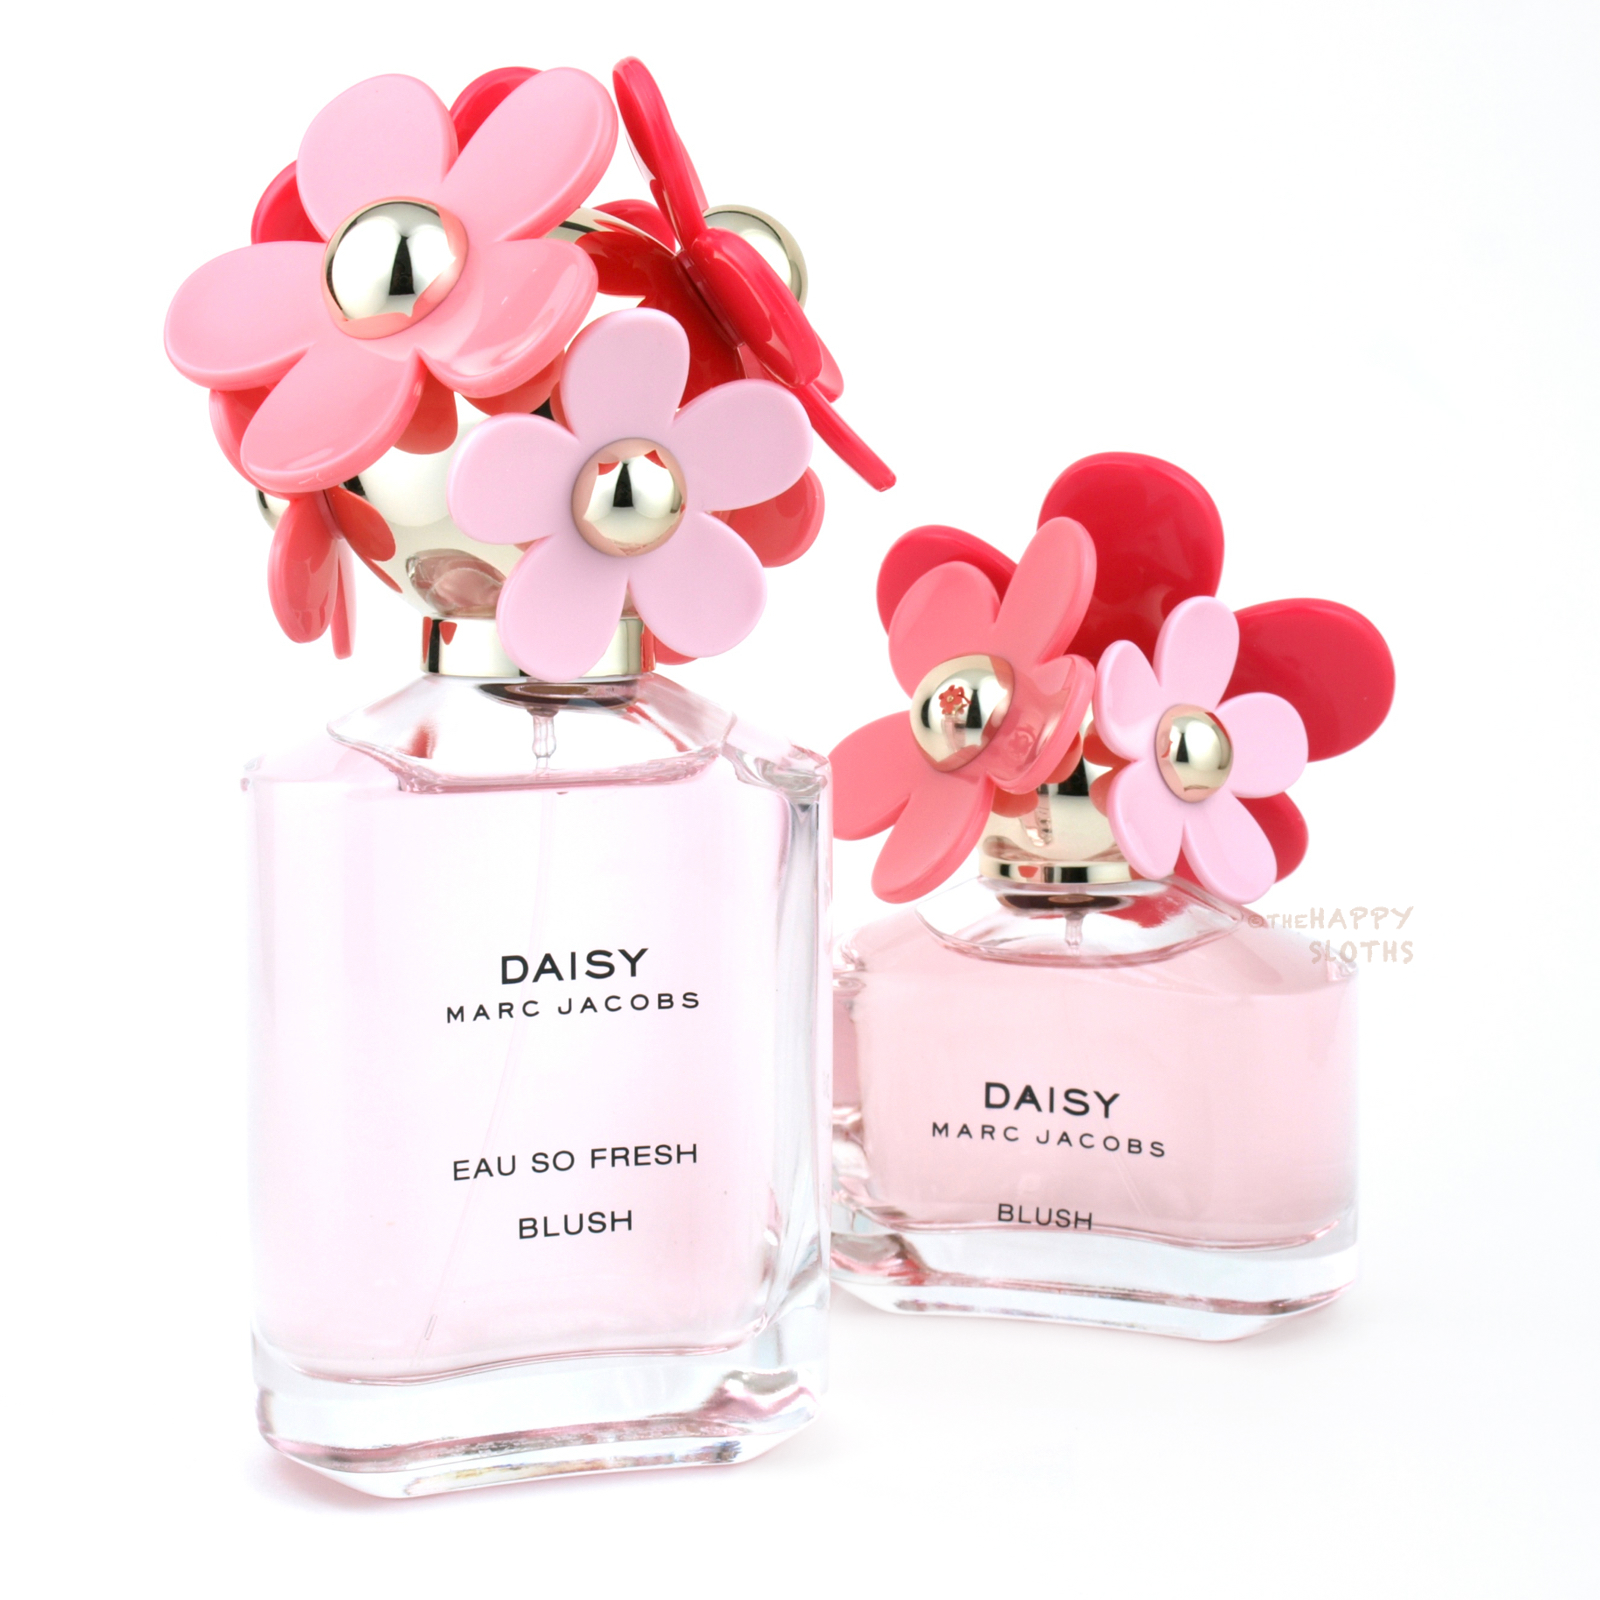 Marc jacobs daisy blush daisy eau so fresh blush review the marc jacobs daisy eau so fresh blush daisy blush izmirmasajfo